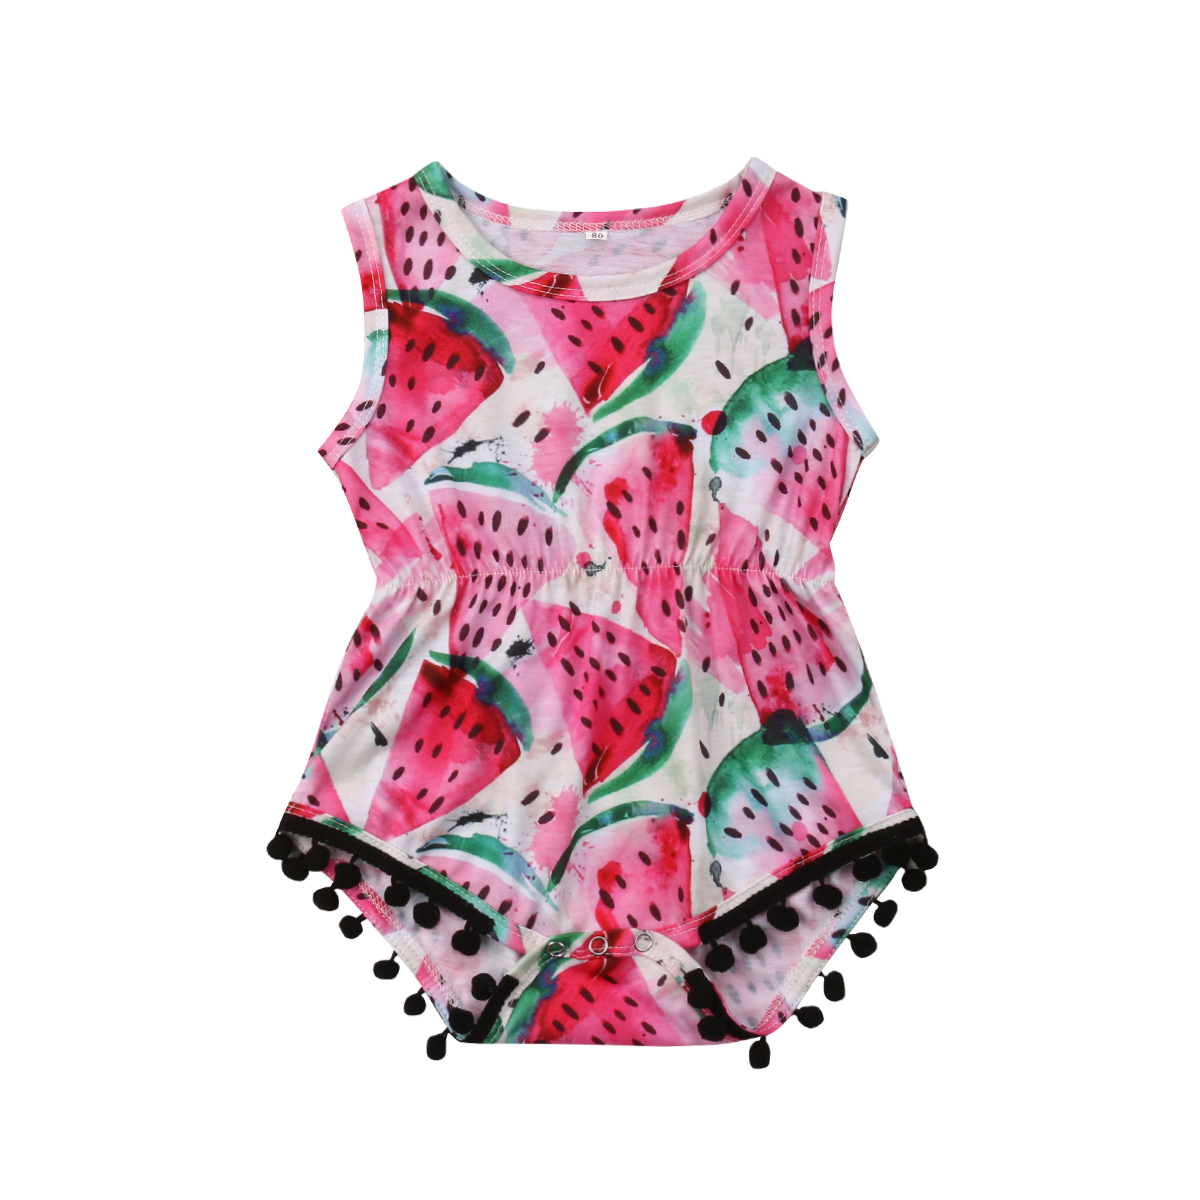 3-18M Infant Newborn Baby Girl Sleeveless Watermelon Print Tassel Ball   Romper   Jumpsuit Outfits Summer Sunsuit Clothes